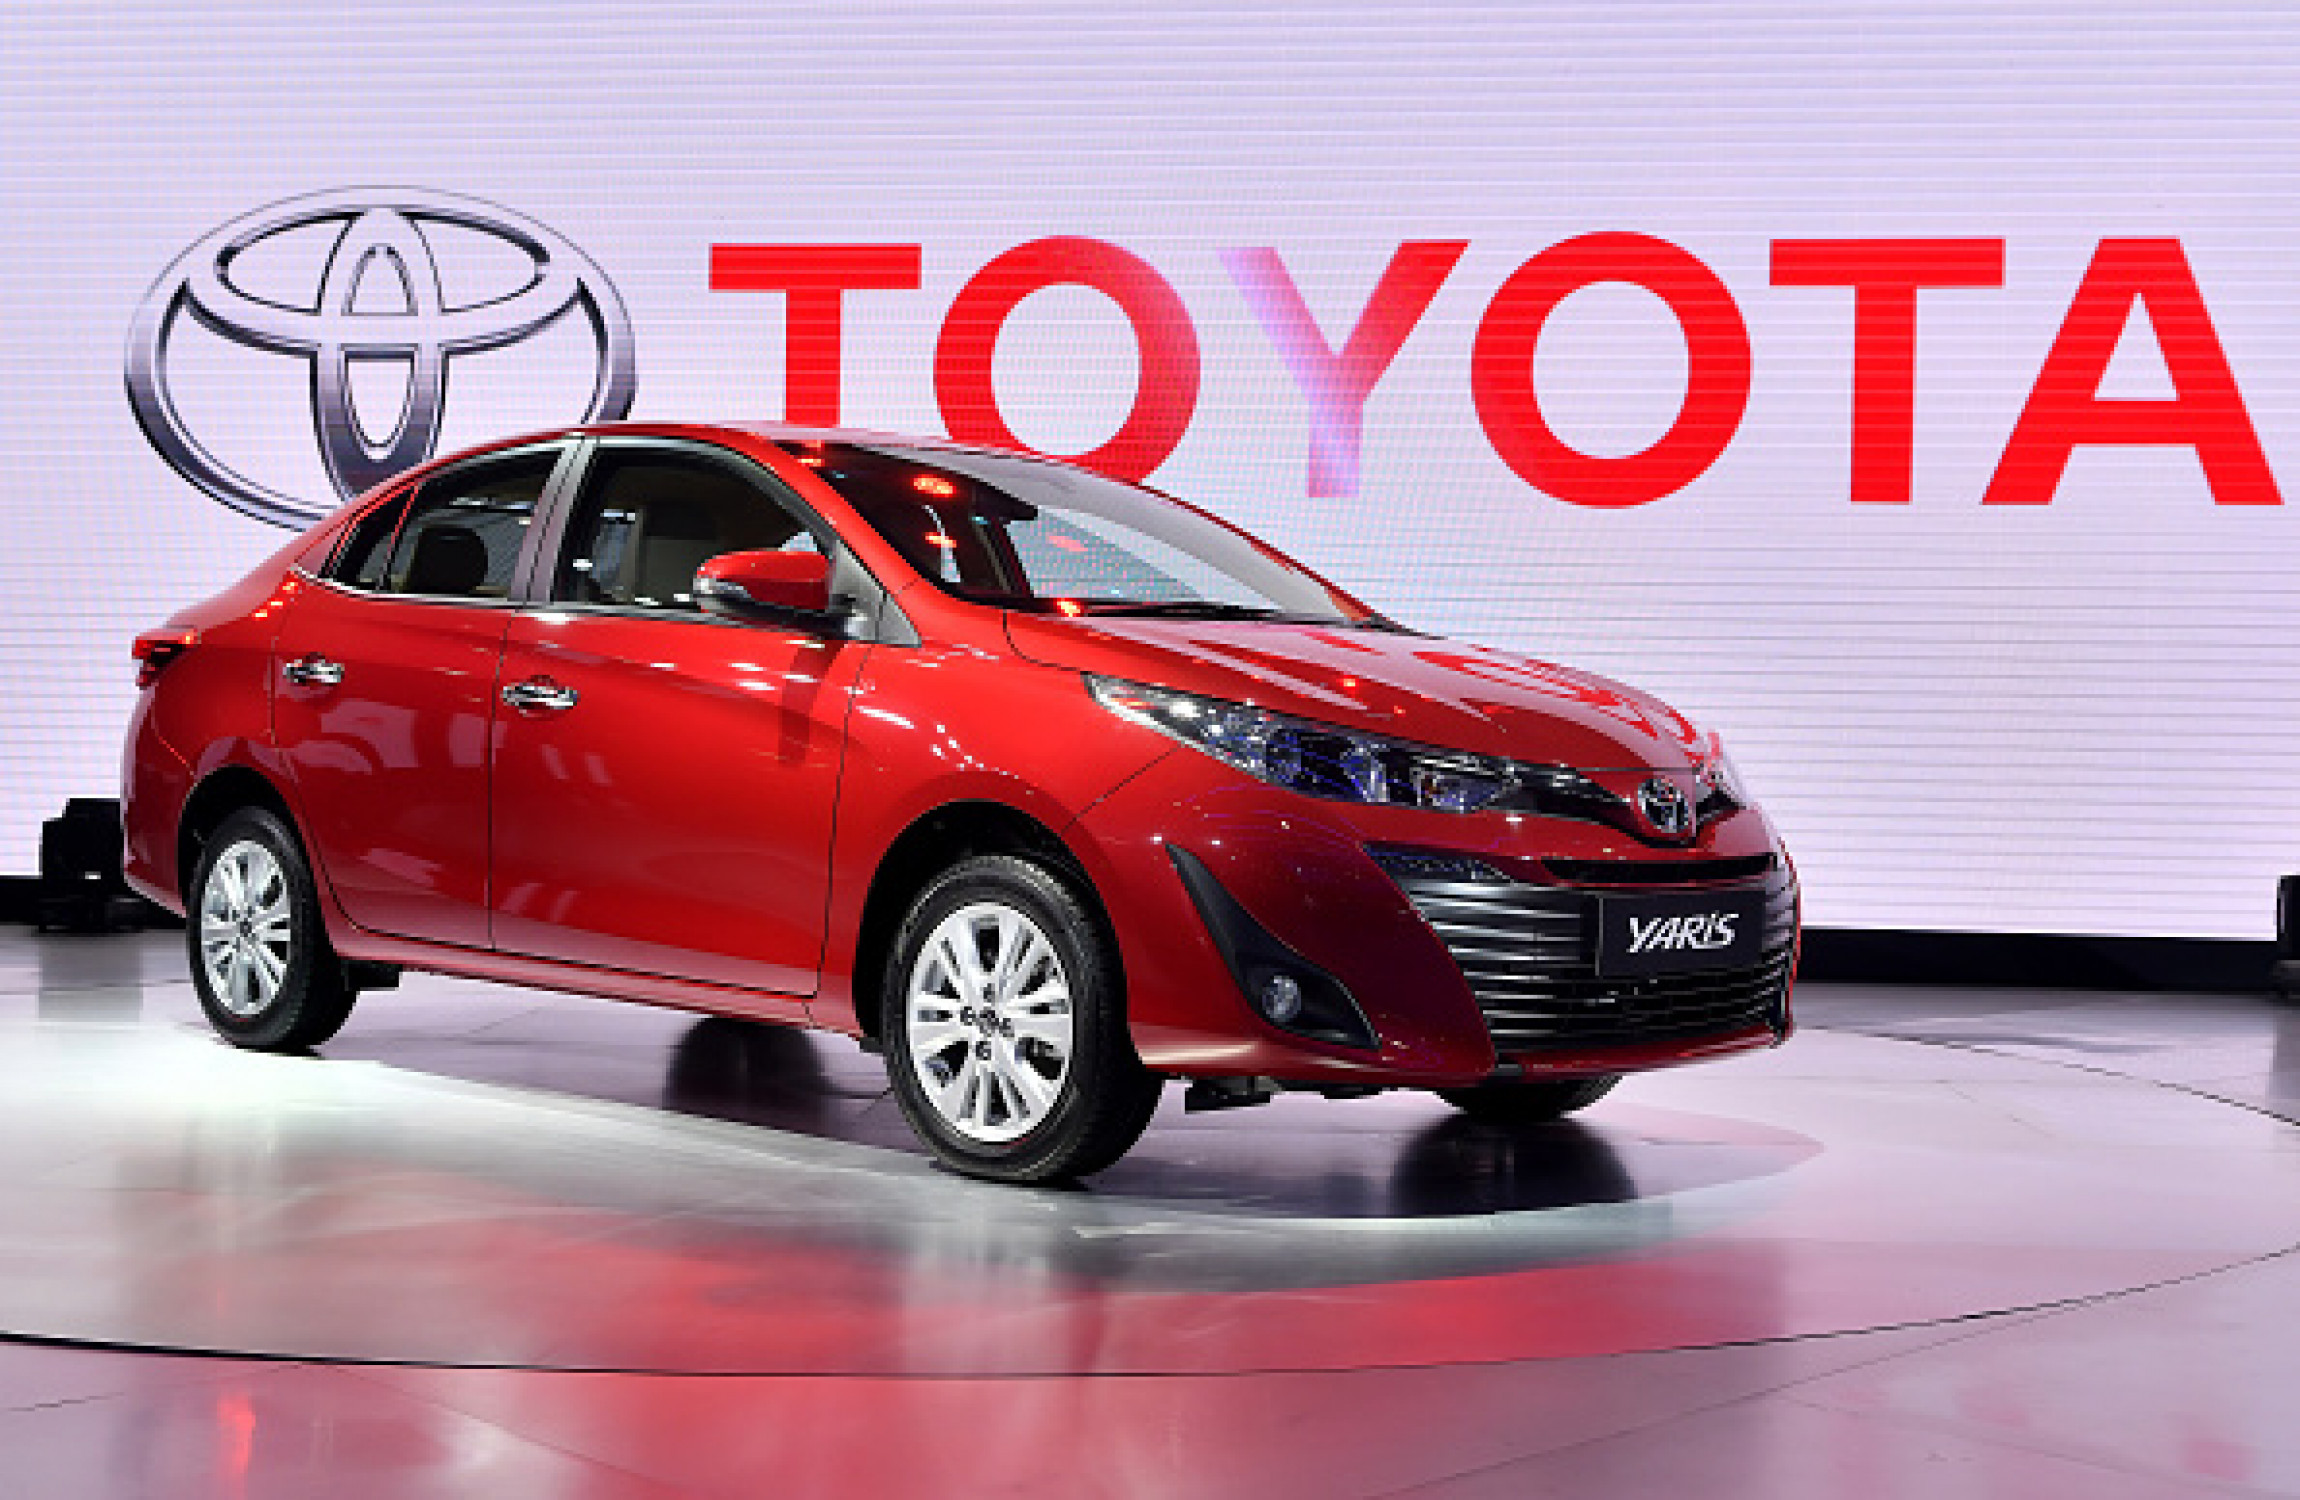 Toyota stops selling diesel cars in Europe